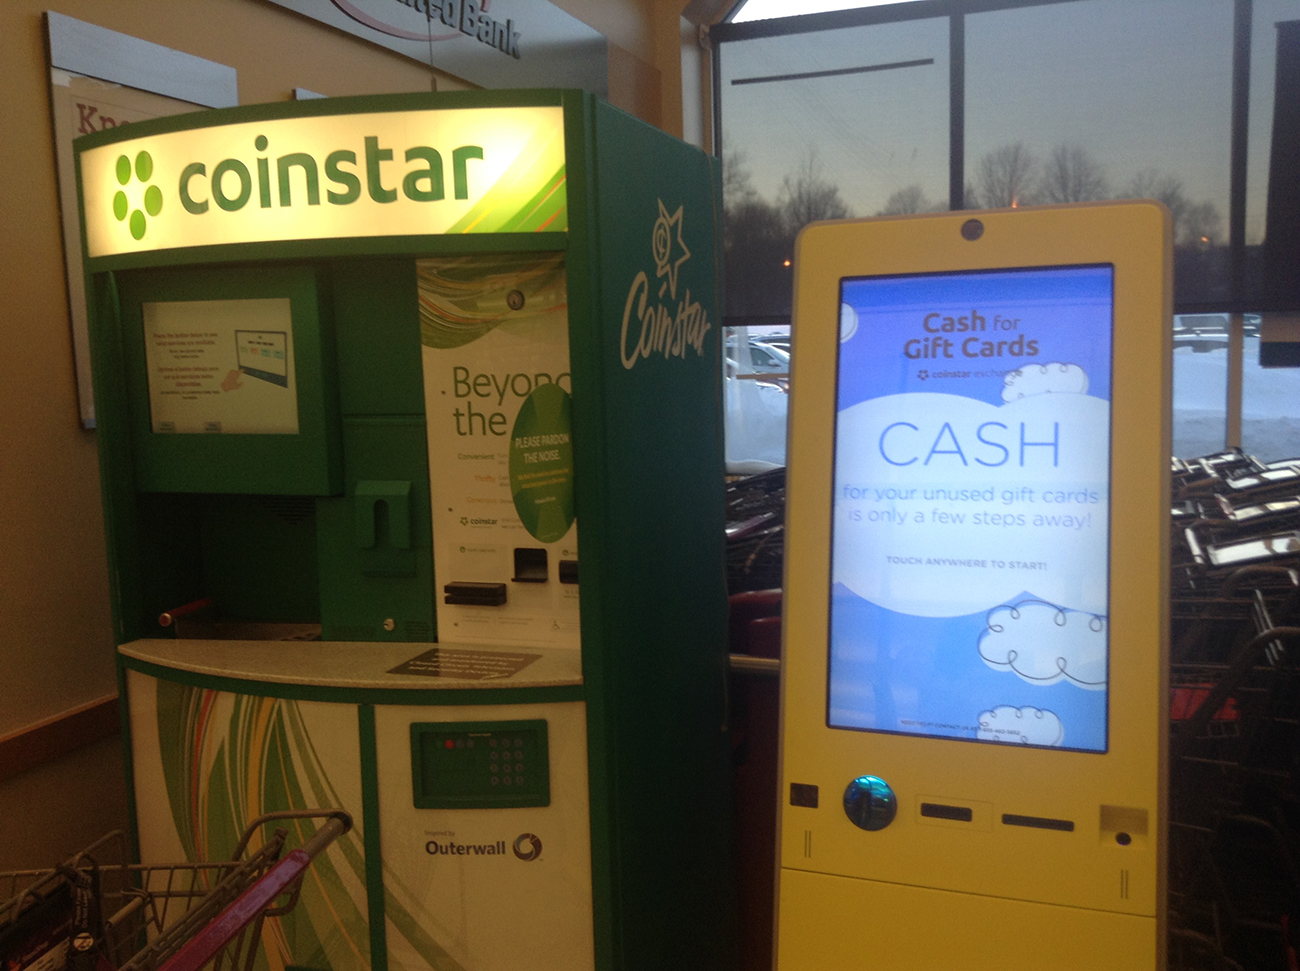 Photograph shows a coin star machine beside a cash for gift cards machine.